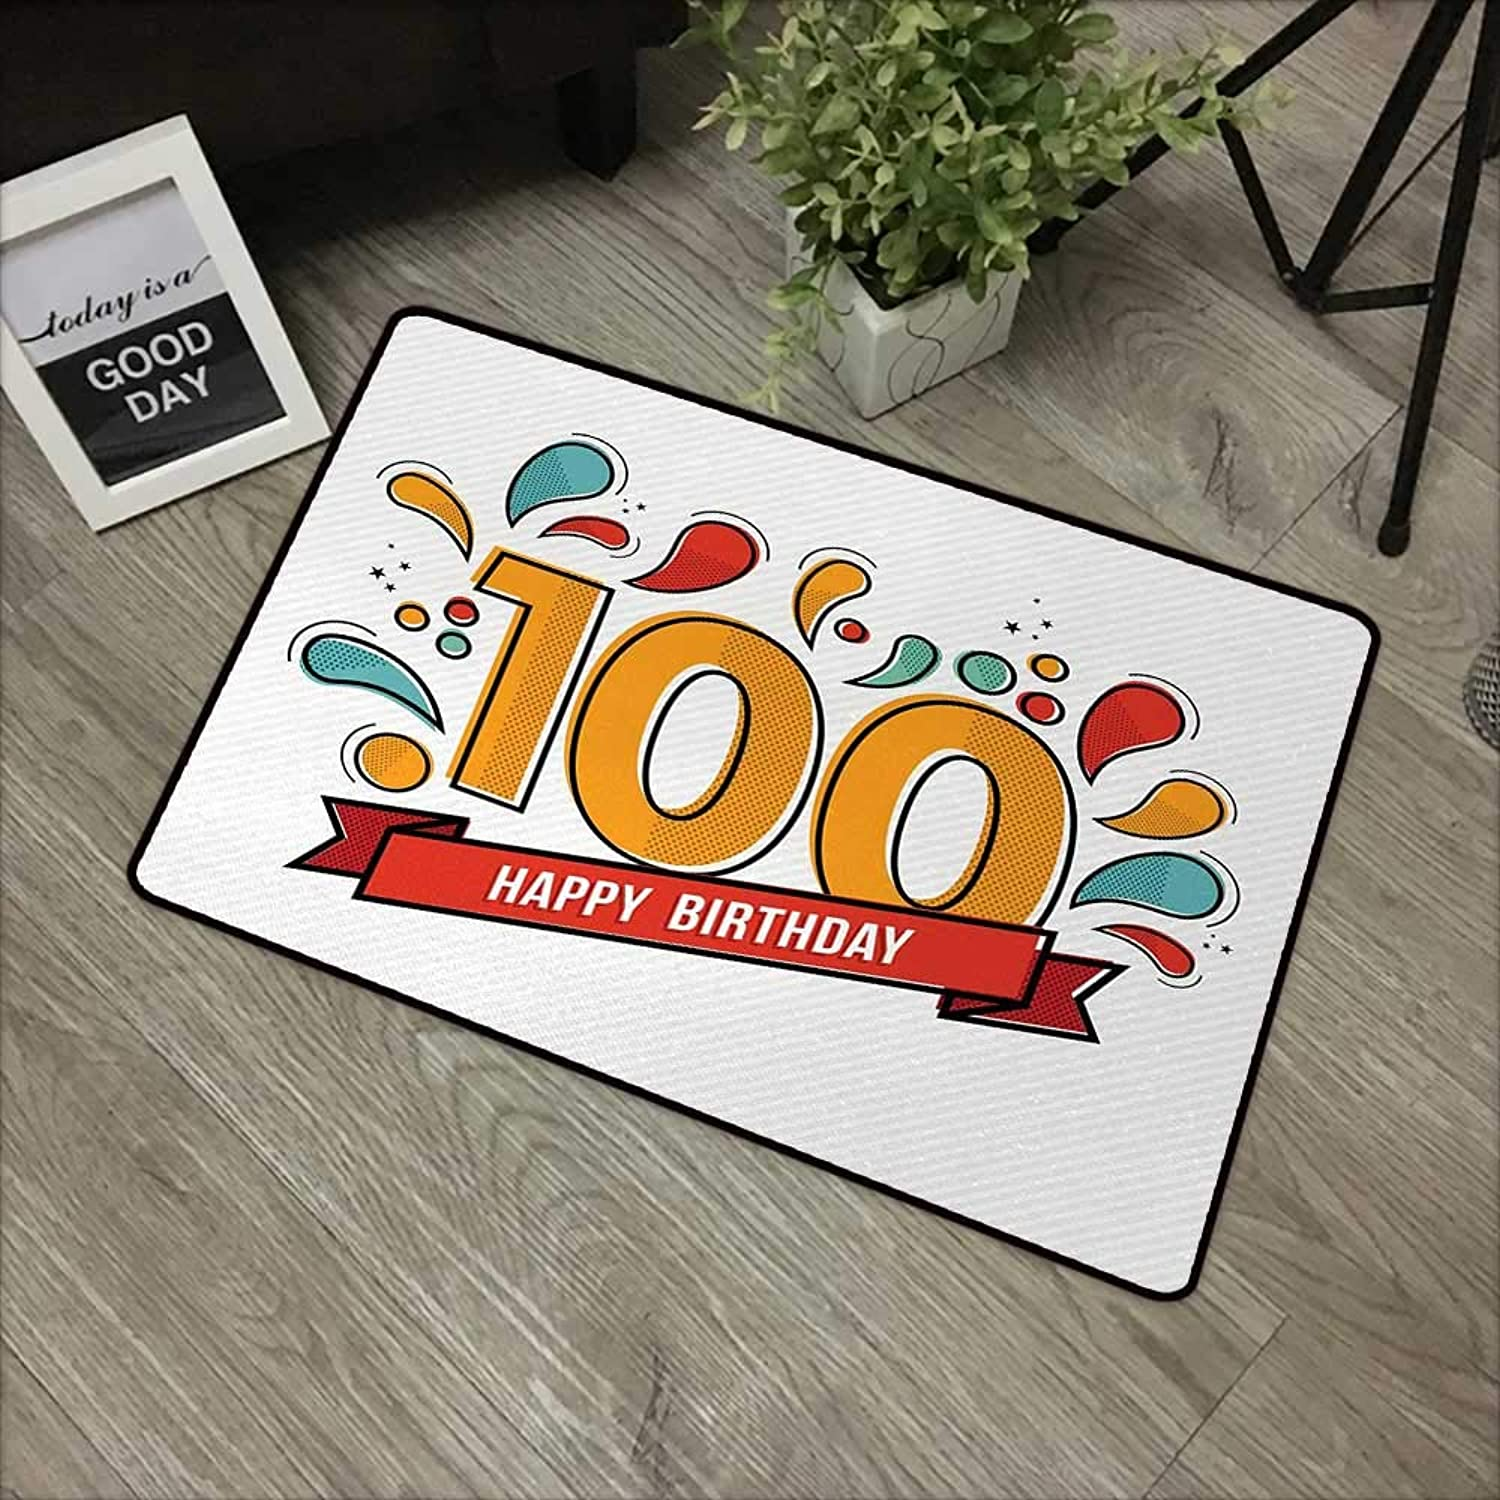 Floor mat W35 x L59 INCH 100th Birthday,Grannies Lived for Centuries 100 Birthday Party Growing Old Digital Image,Multicolor with Non-Slip Backing Door Mat Carpet